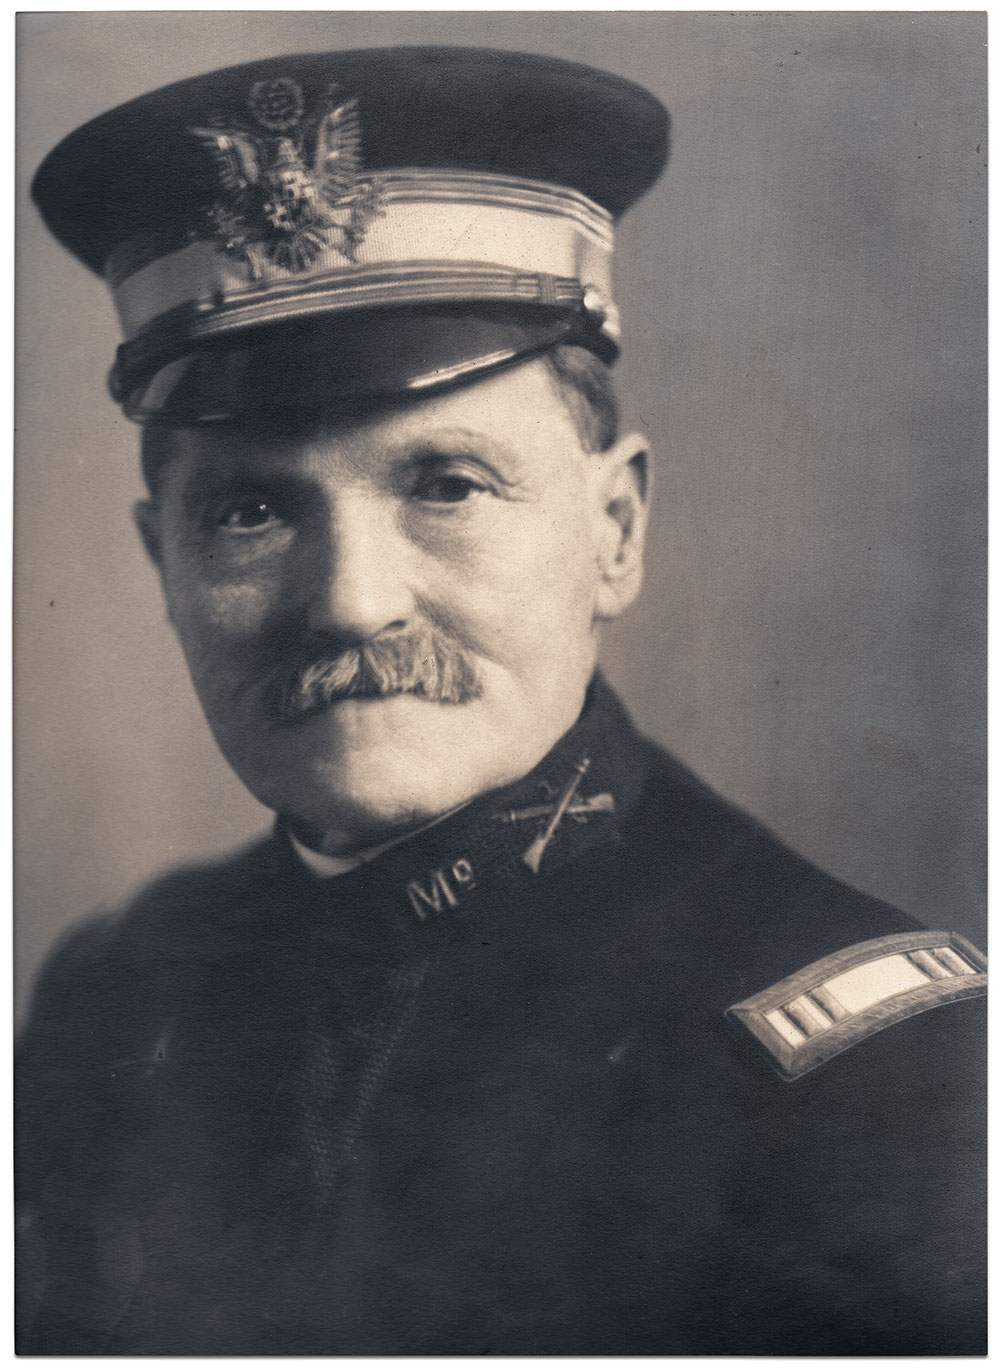 Capt. Fisher sat for a portrait in a local Hagerstown photographer's studio around the time of his retirement in 1911. He wears the regulation Maryland National Guard uniform, including the Model 1902 officer's cap modified for state use with the Maryland flag pattern in the shield of the insignia. Print by a Hagerstown photographer. Collection of the Pioneer Hook and Ladder Company, Hagerstown, Md.